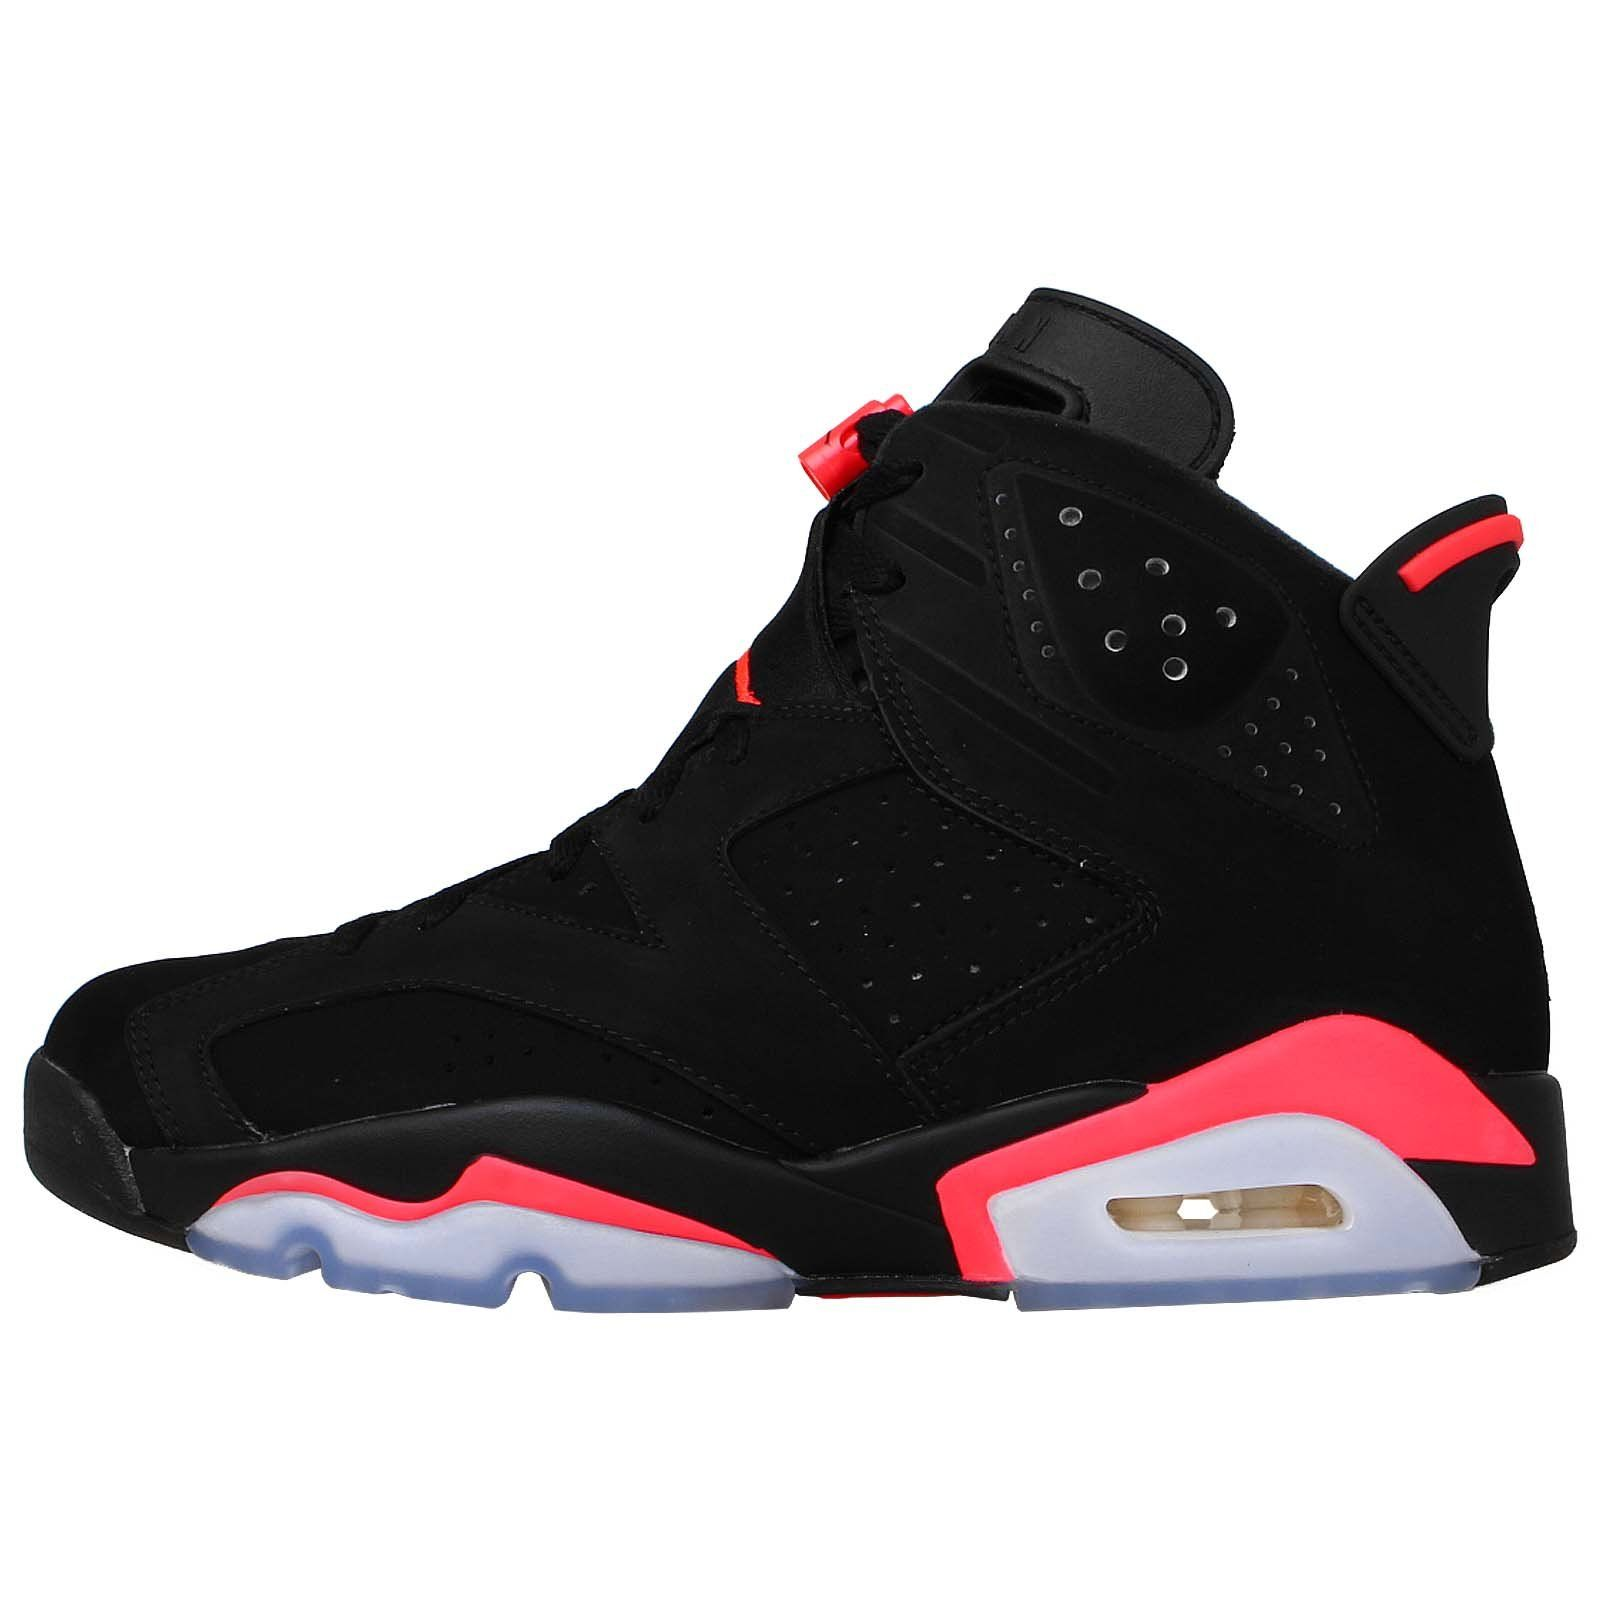 0d1b203d987fa1 ... coupon for nike mens air jordan 6 retro infrared black infrared 23  suede basketball shoes size